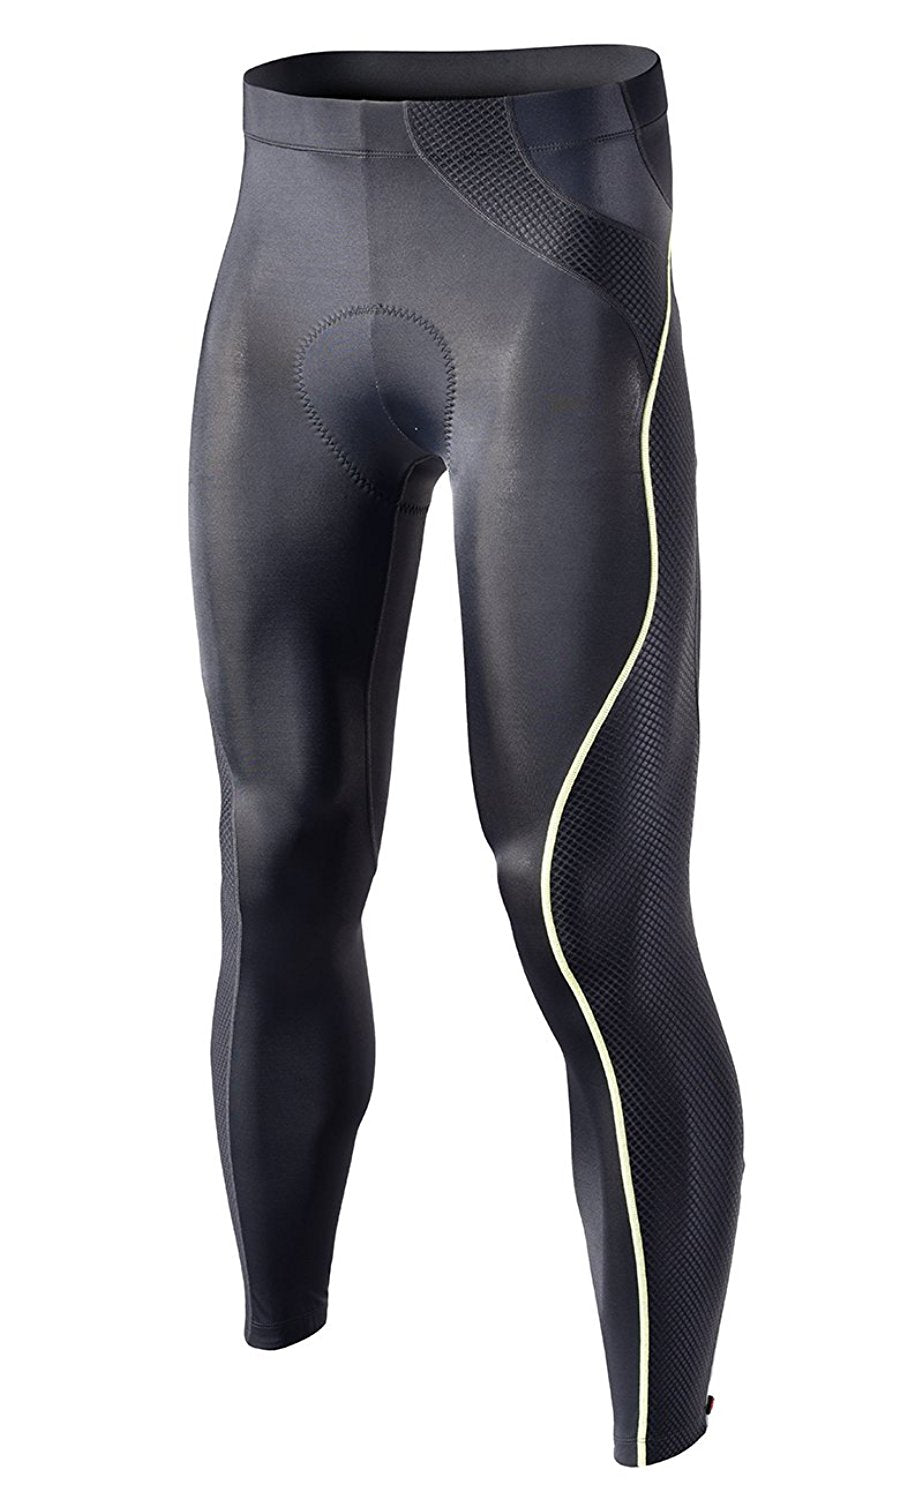 STEED-GA Men Padded Tights